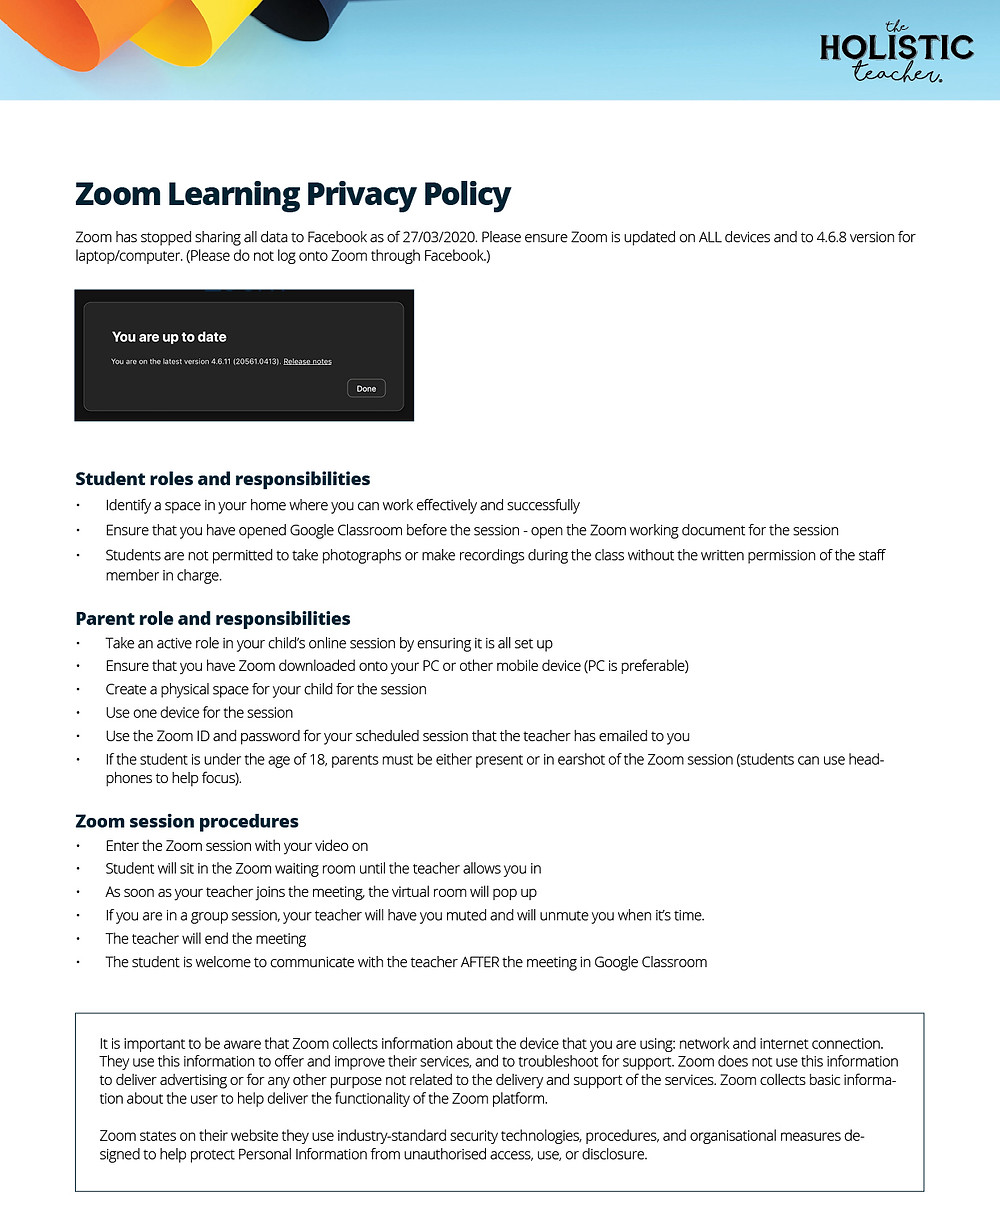 The Holistic Teacher Zoom Learning Privacy Policy